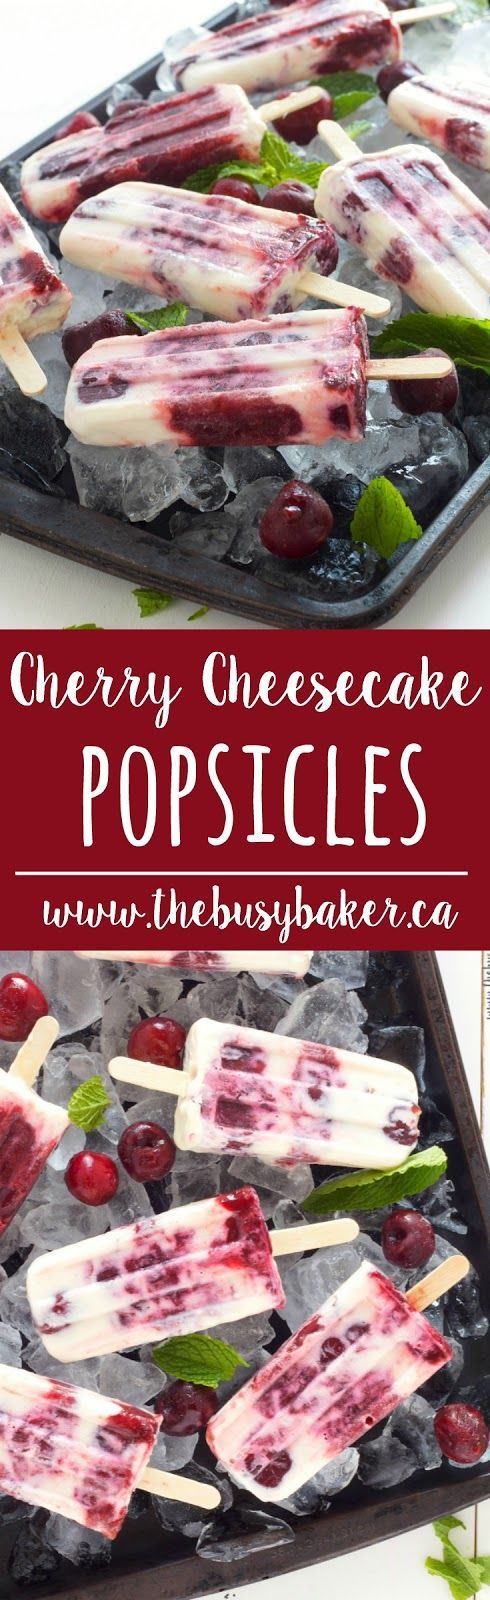 These Cherry Cheesecake Popsicles are perfect for summer holidays! www.thebusybaker.ca